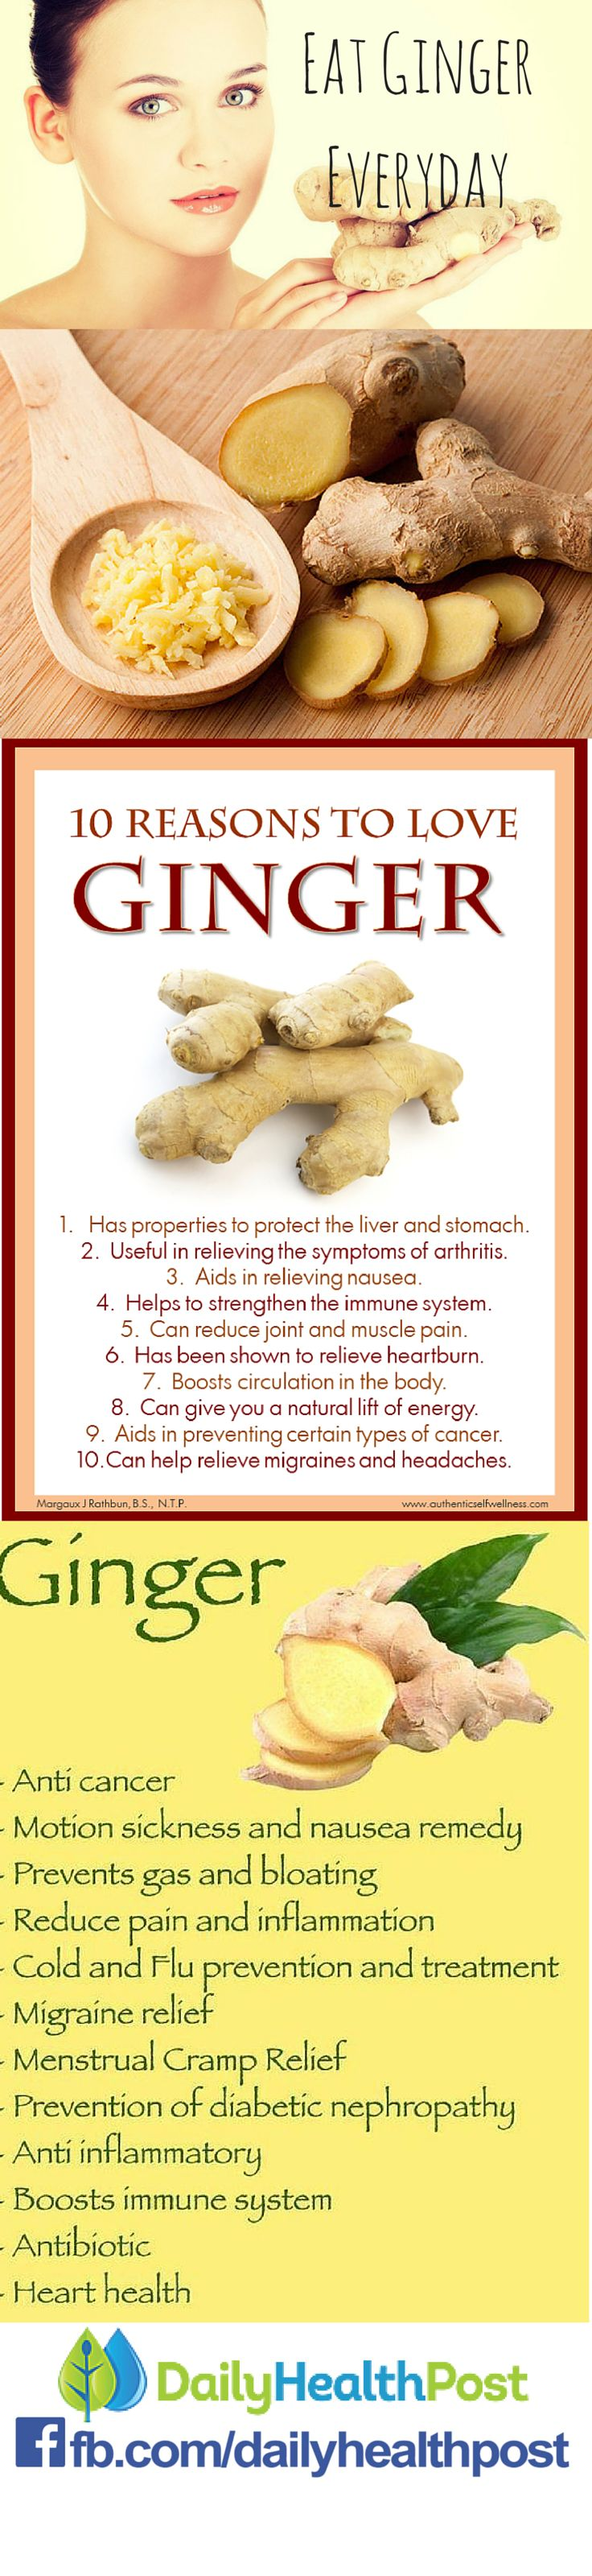 For thousands of years, all over the world, ginger has been used to help digestive health and treat pain. Moreover, modern studies continue to prove its real-life benefits and legitimize its use.     Whether it be taken dried, fresh or juiced, there's no denying that ginger is an integral part of a healthy daily diet. If you're not familiar with this root, here are 8 reasons to take it everyday.